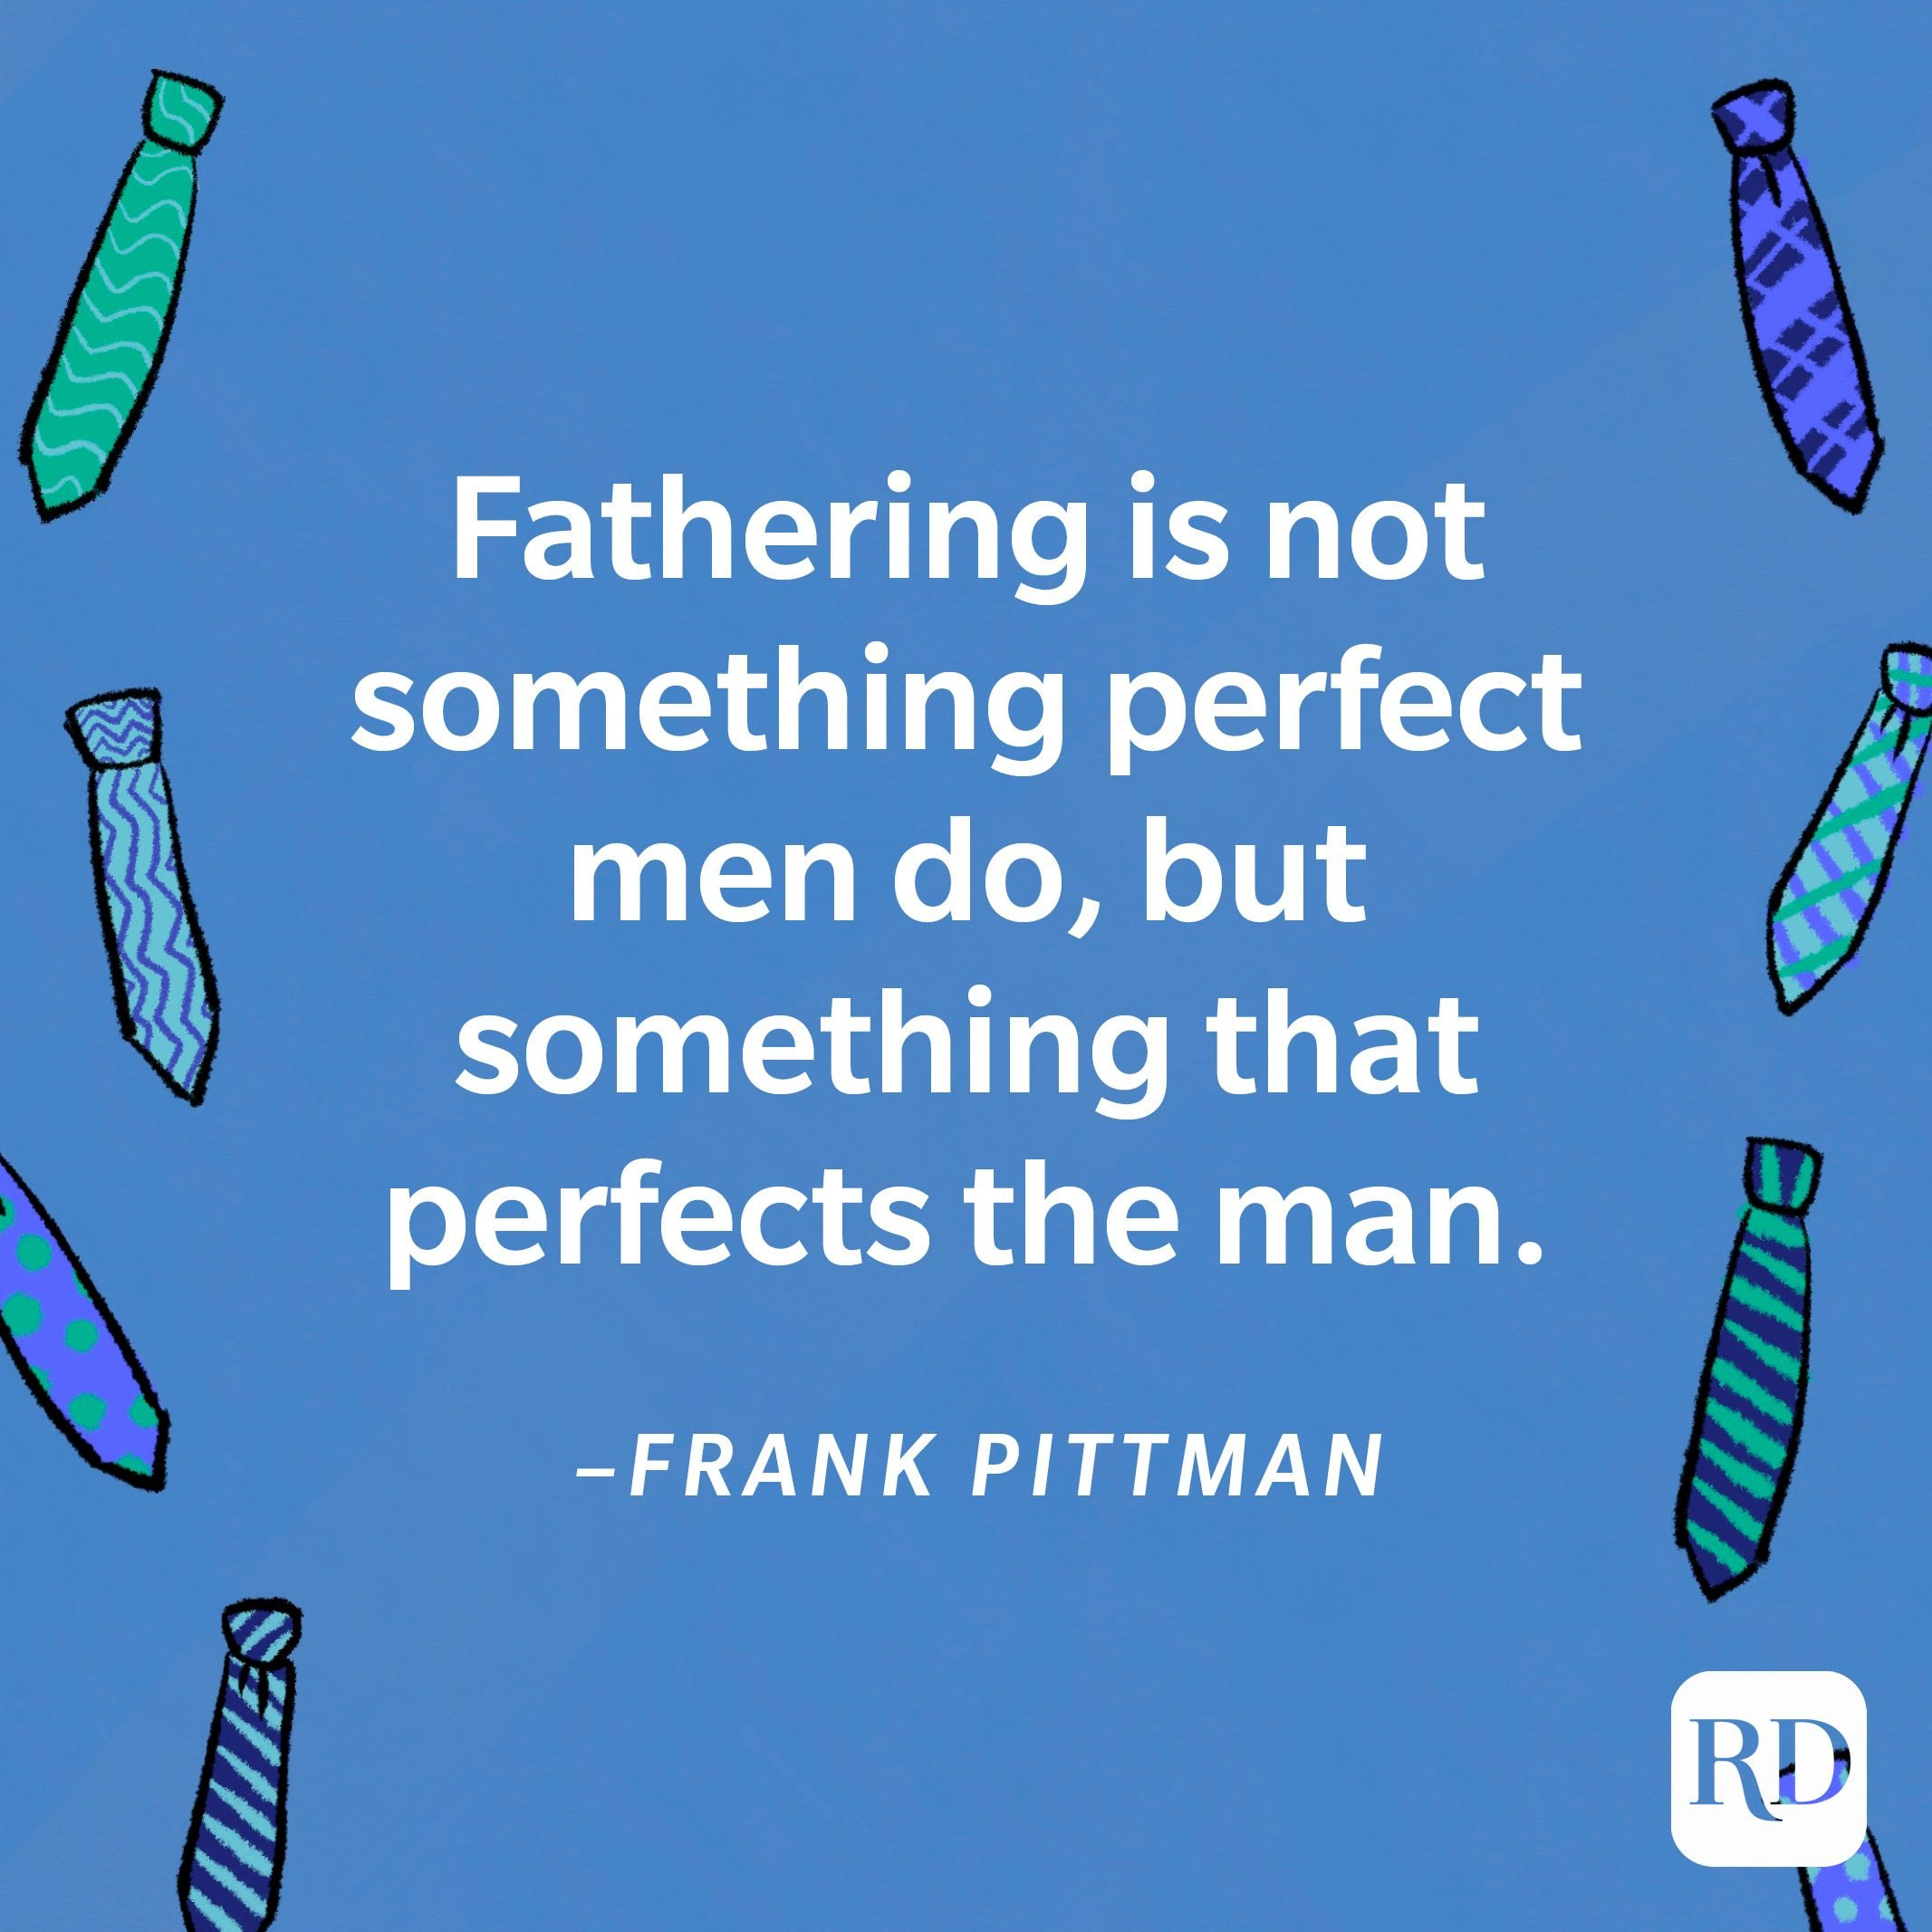 """""""Fathering is not something perfect men do, but something that perfects the man.""""—Frank Pittman 14"""